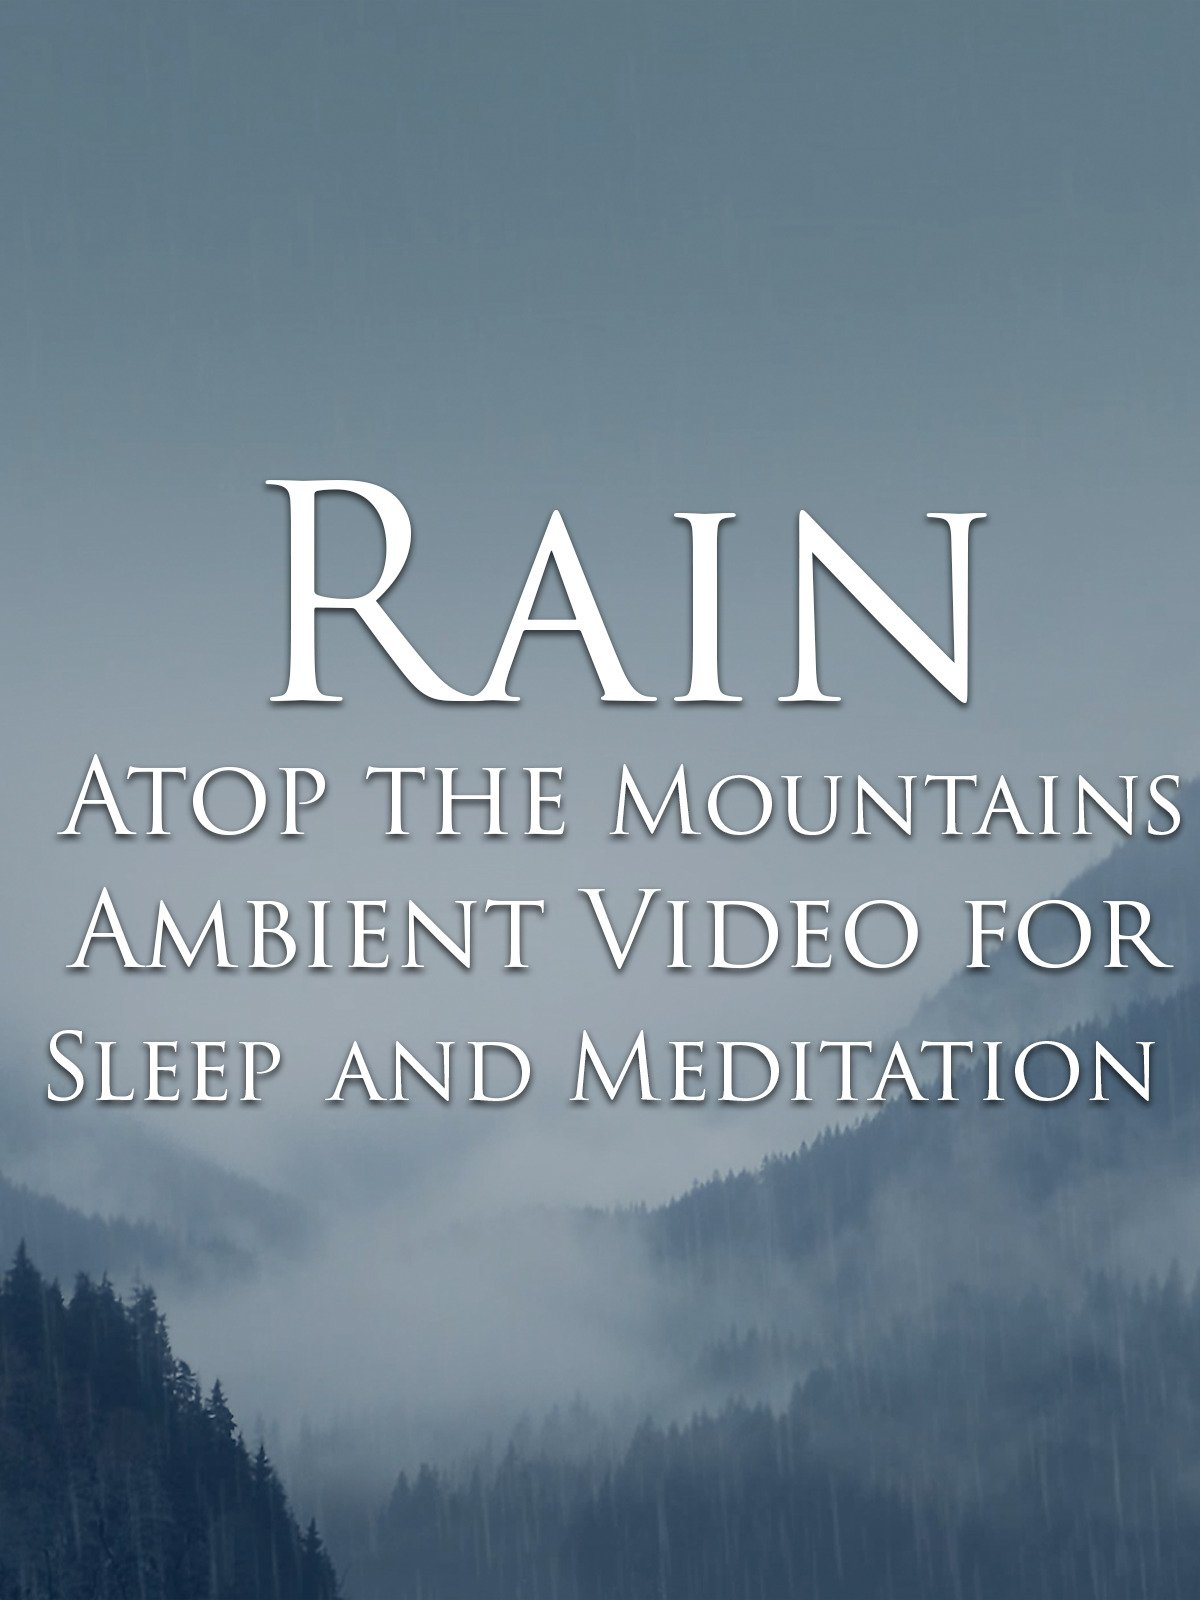 Rain Atop the Mountains Ambient Video for Sleep and Meditation